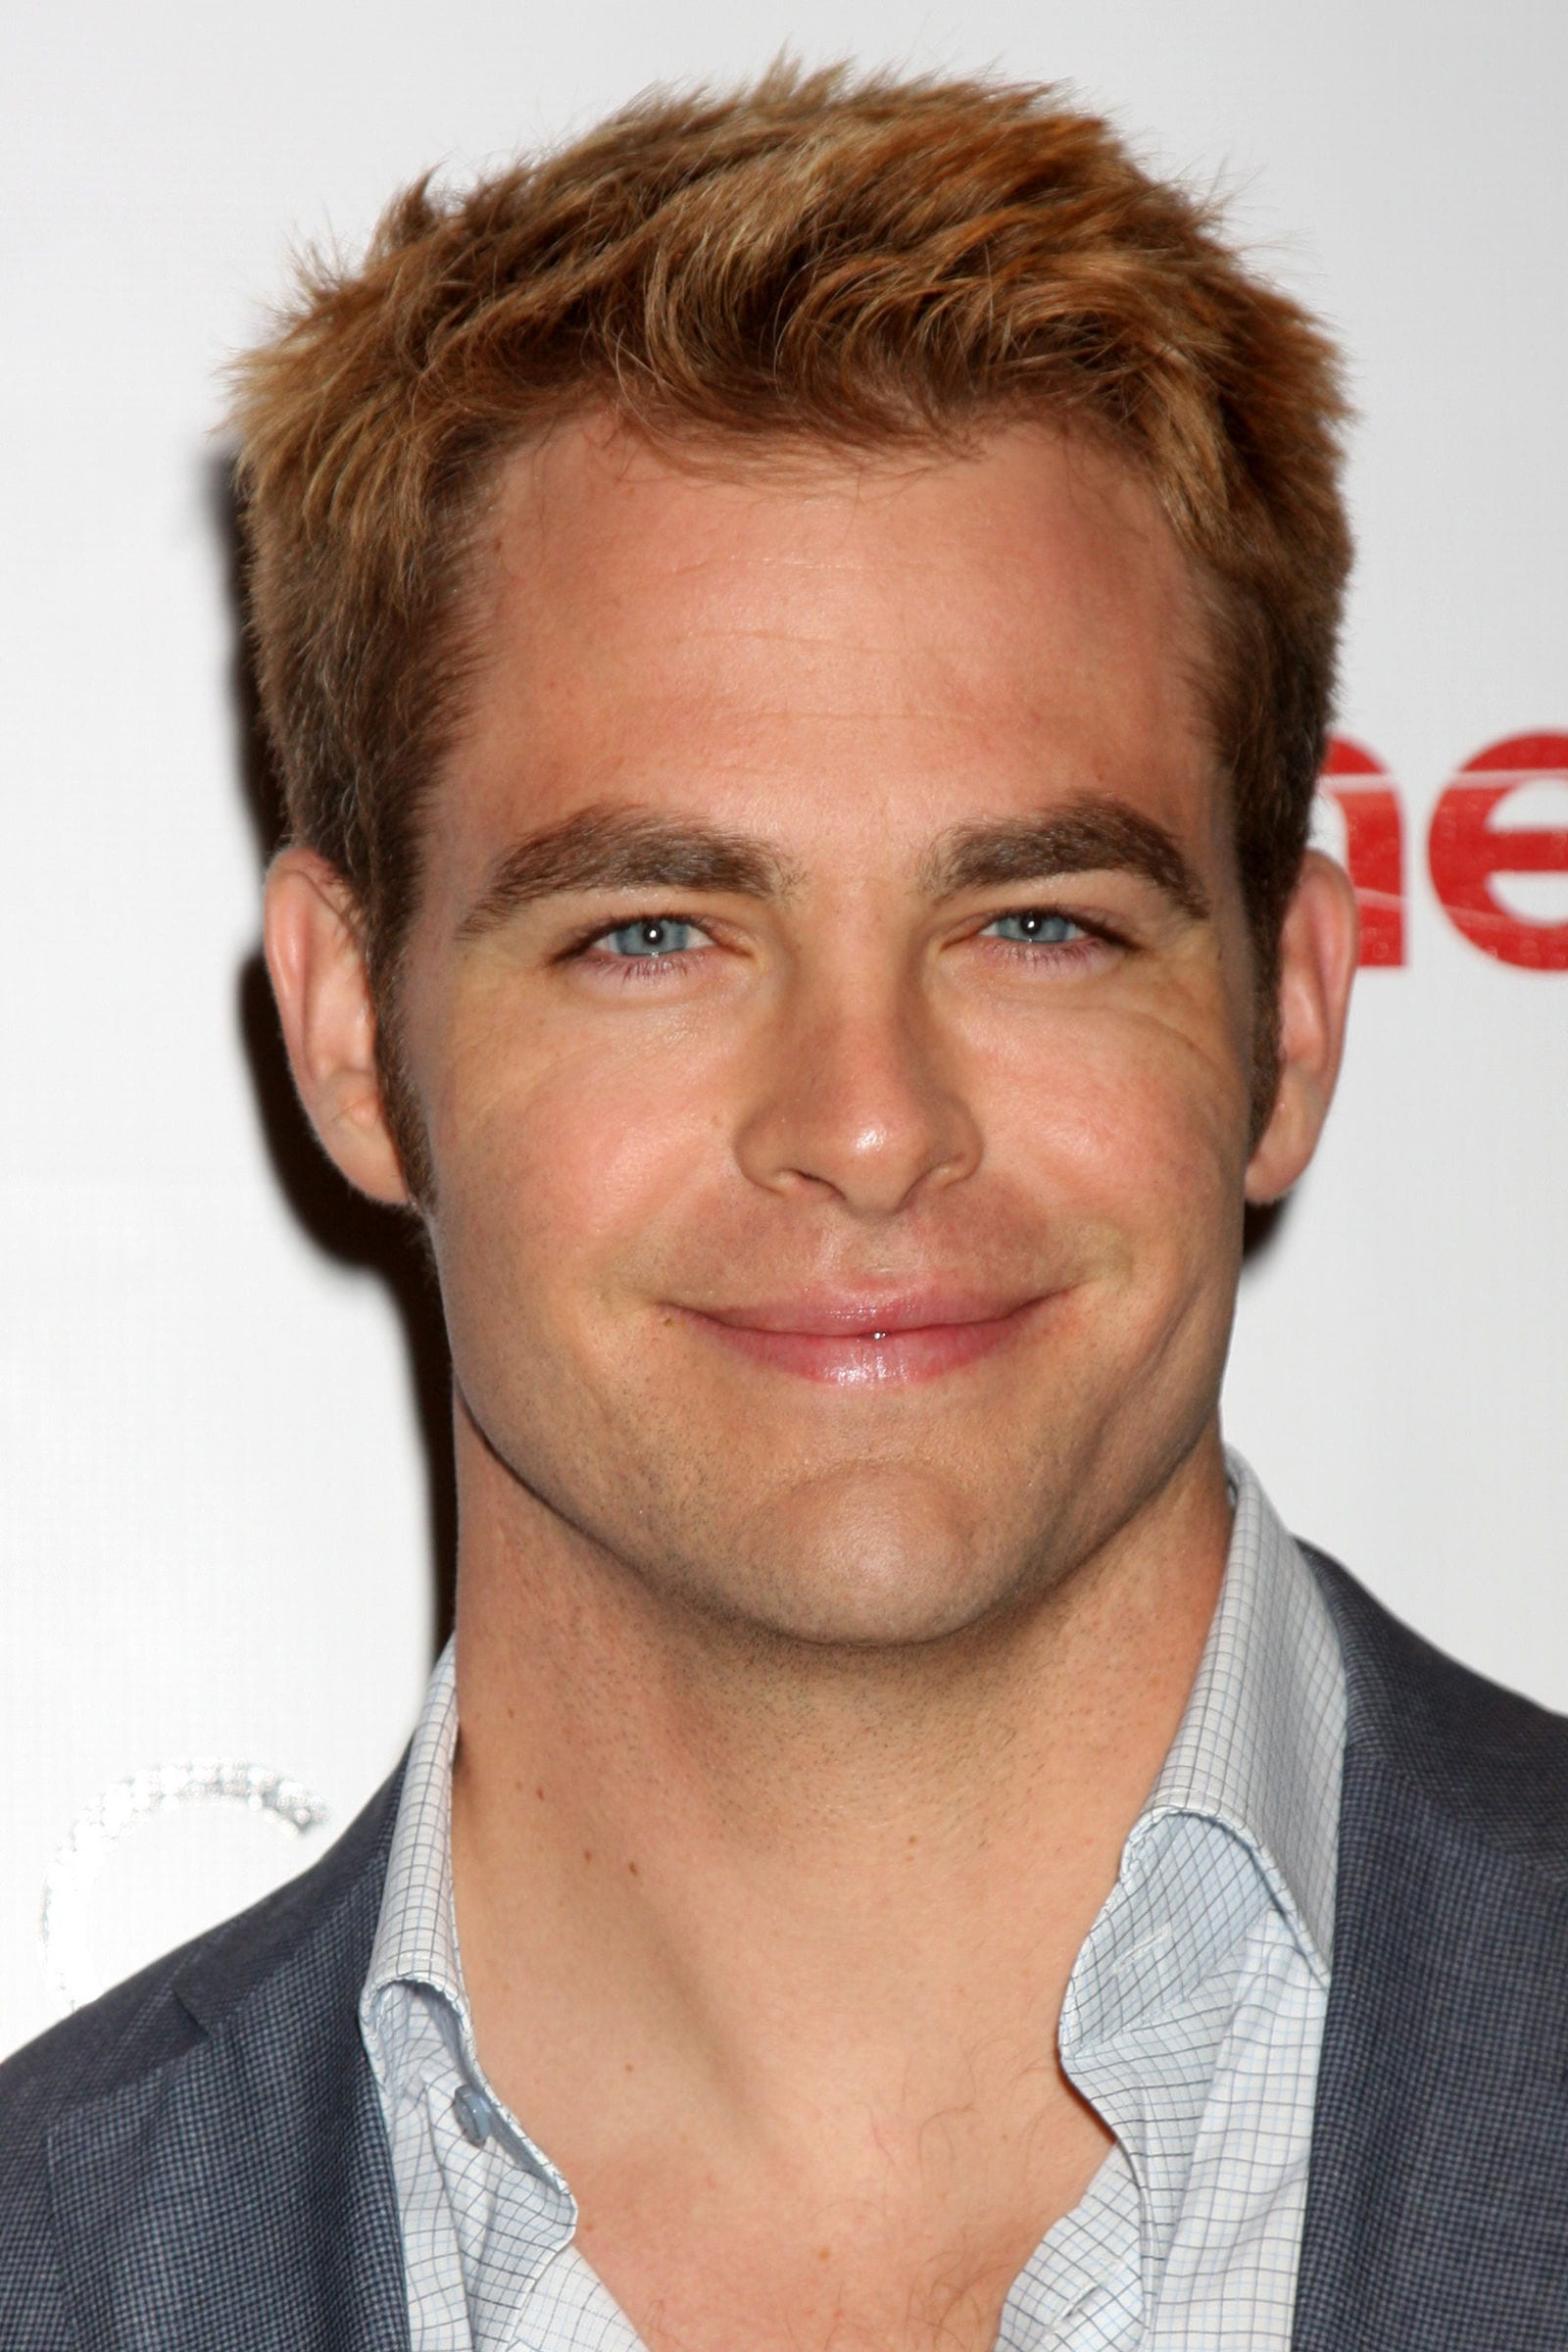 Chris Pine messy textured spiky top undercut by Kathy Hutchins